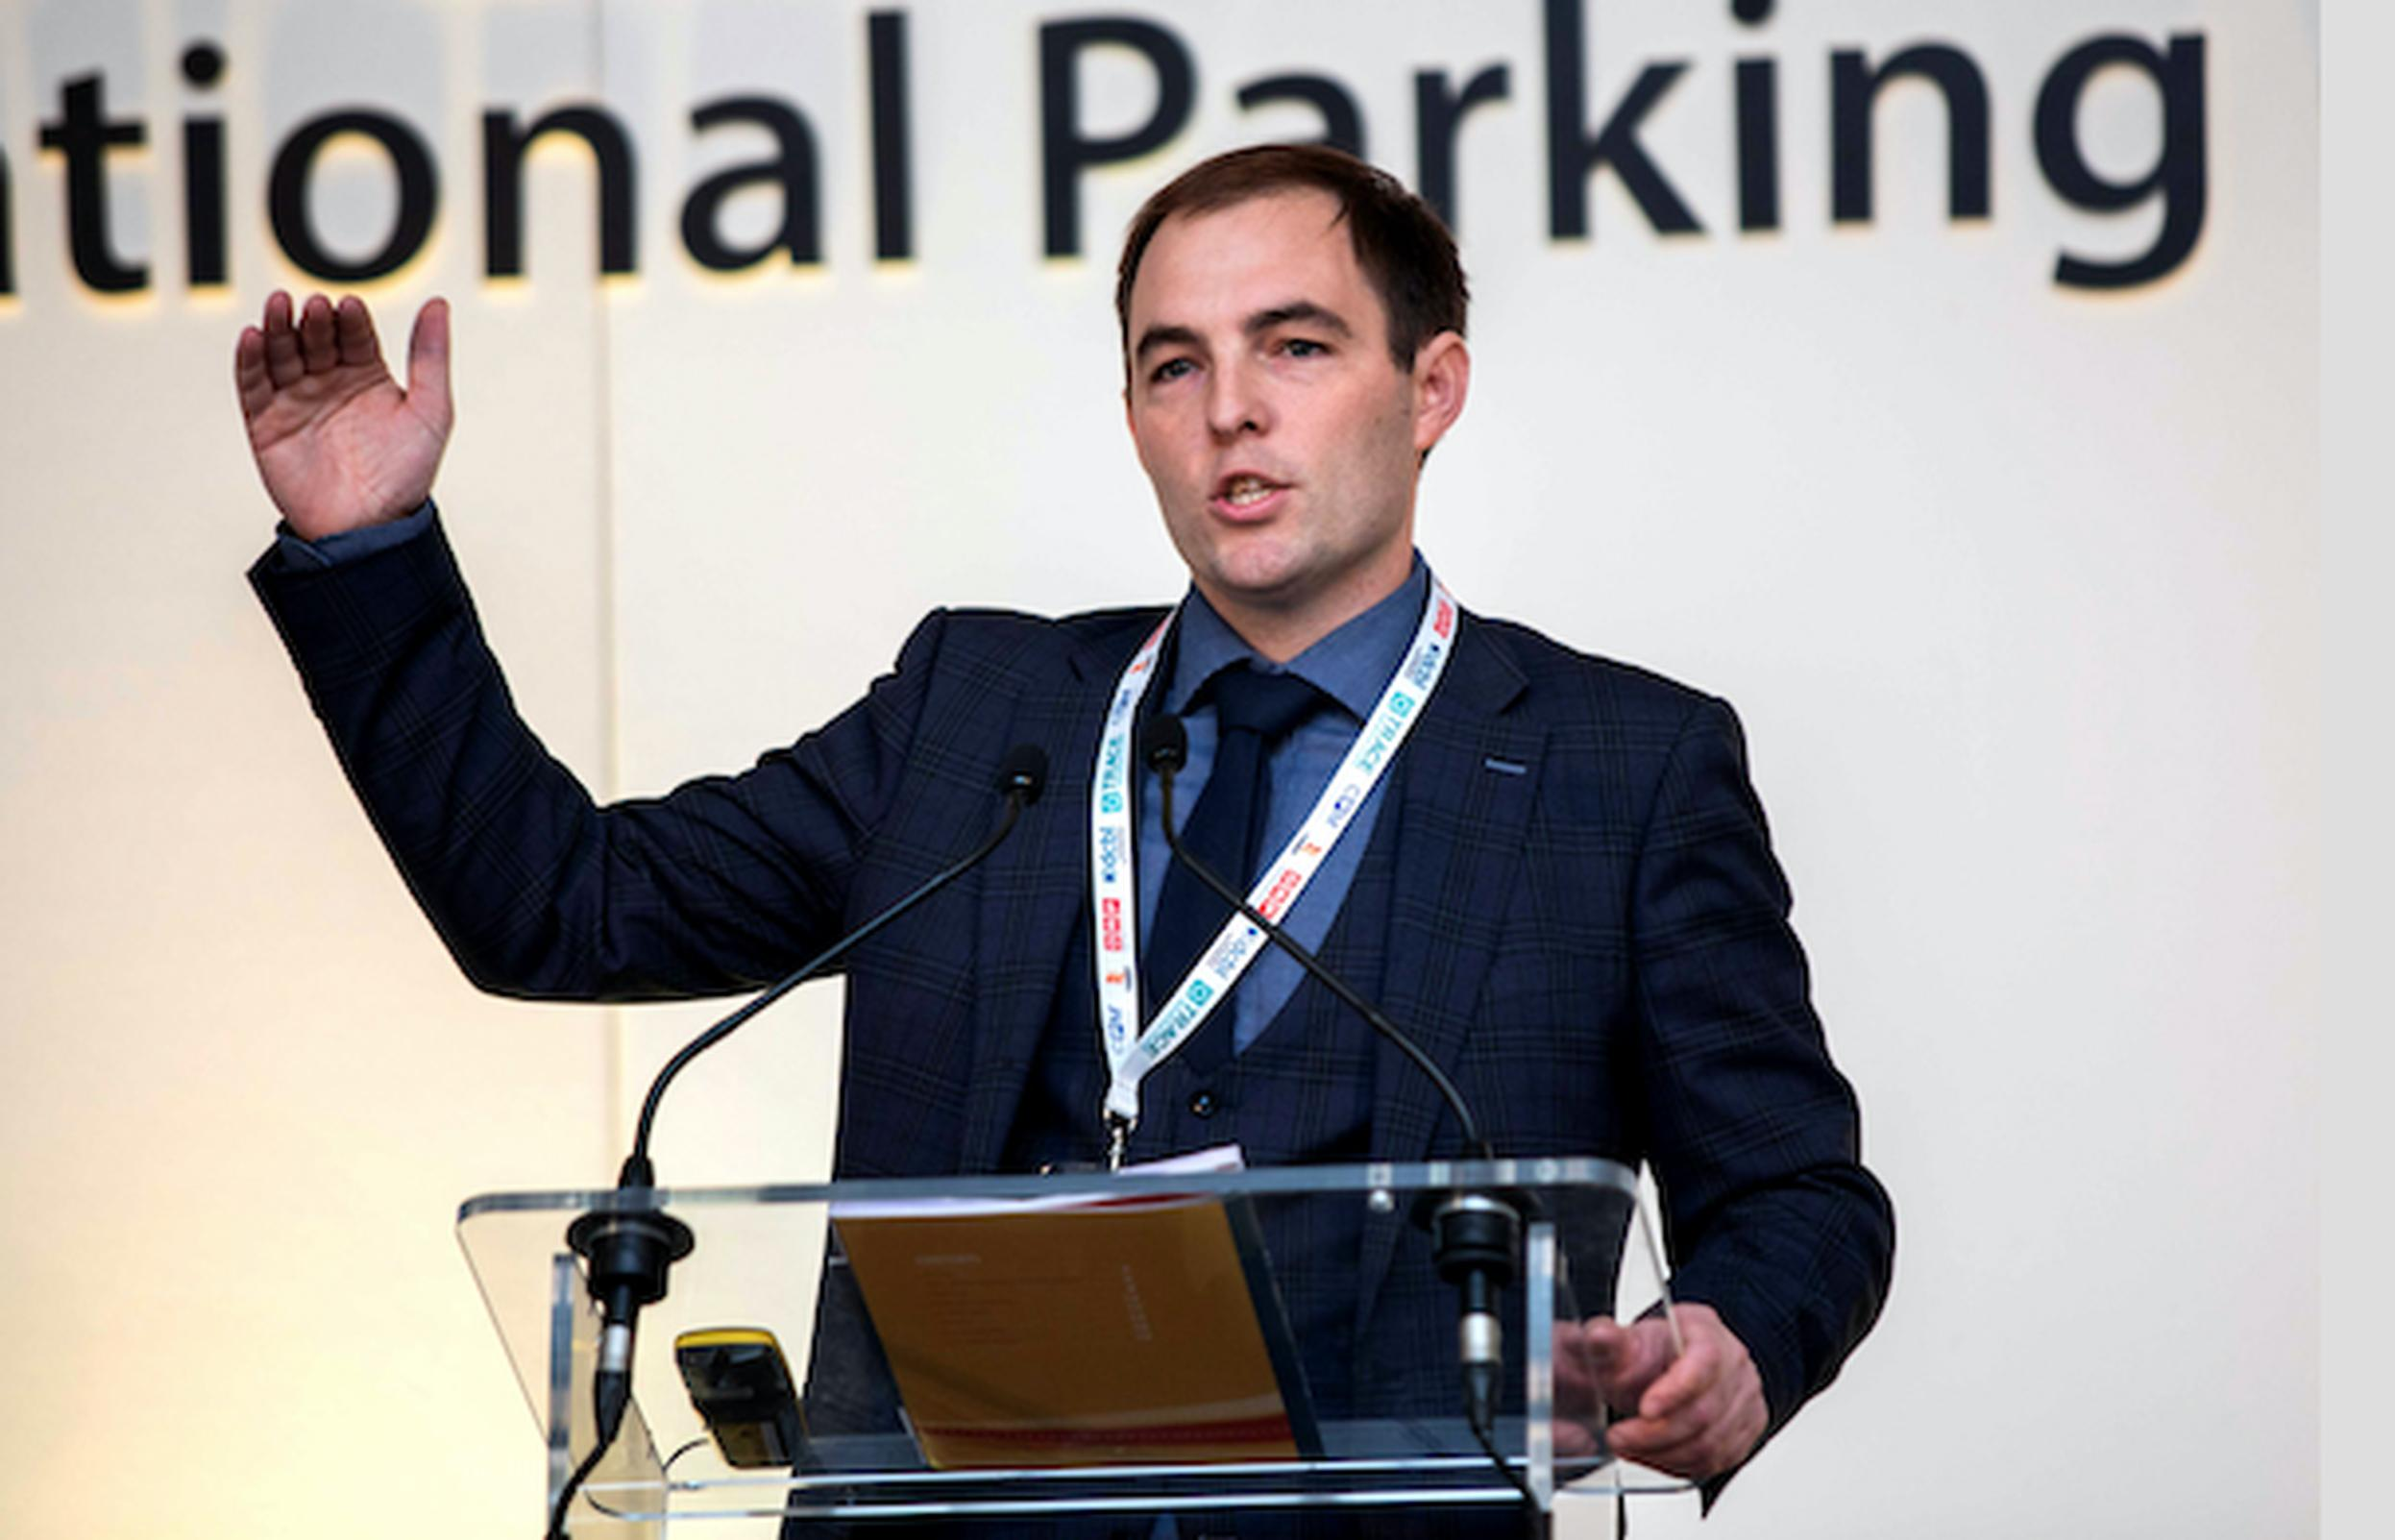 IPC plans to provide public sector parking appeals